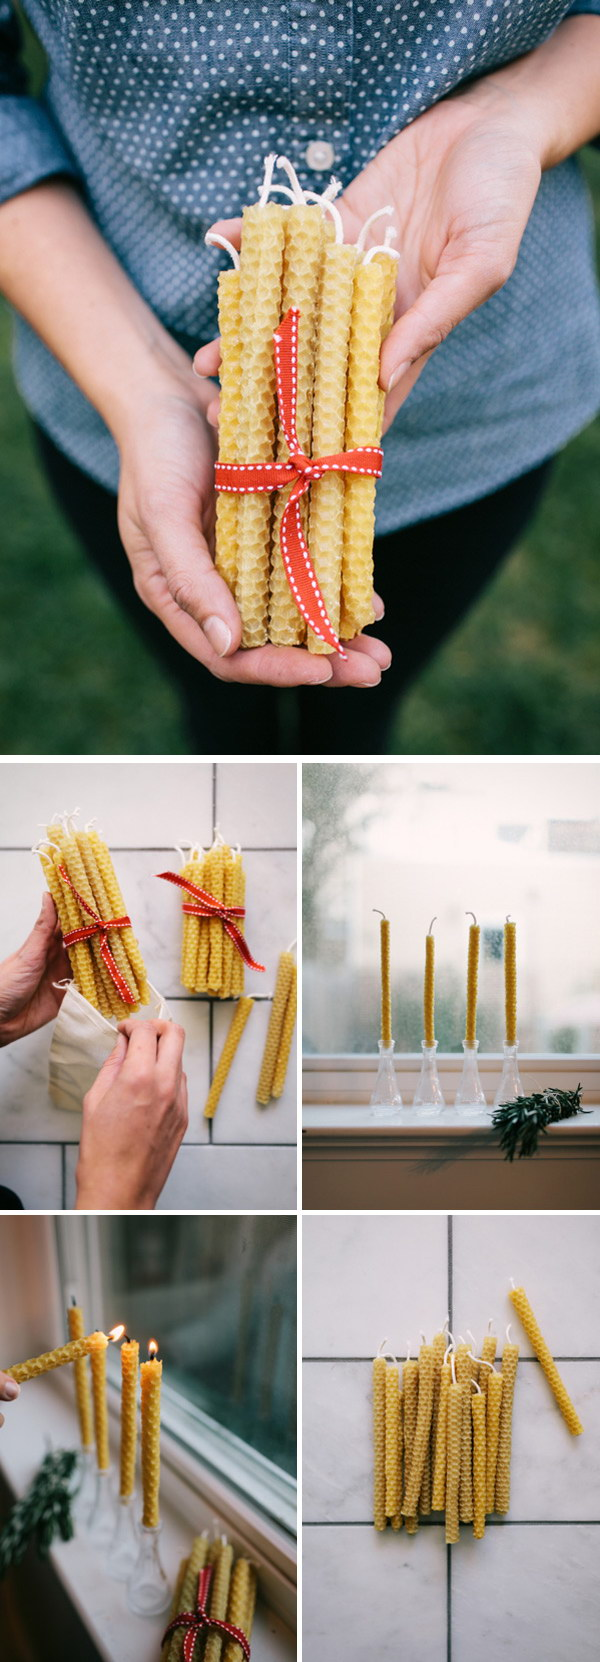 32 Awesome DIY Gifts for Mom